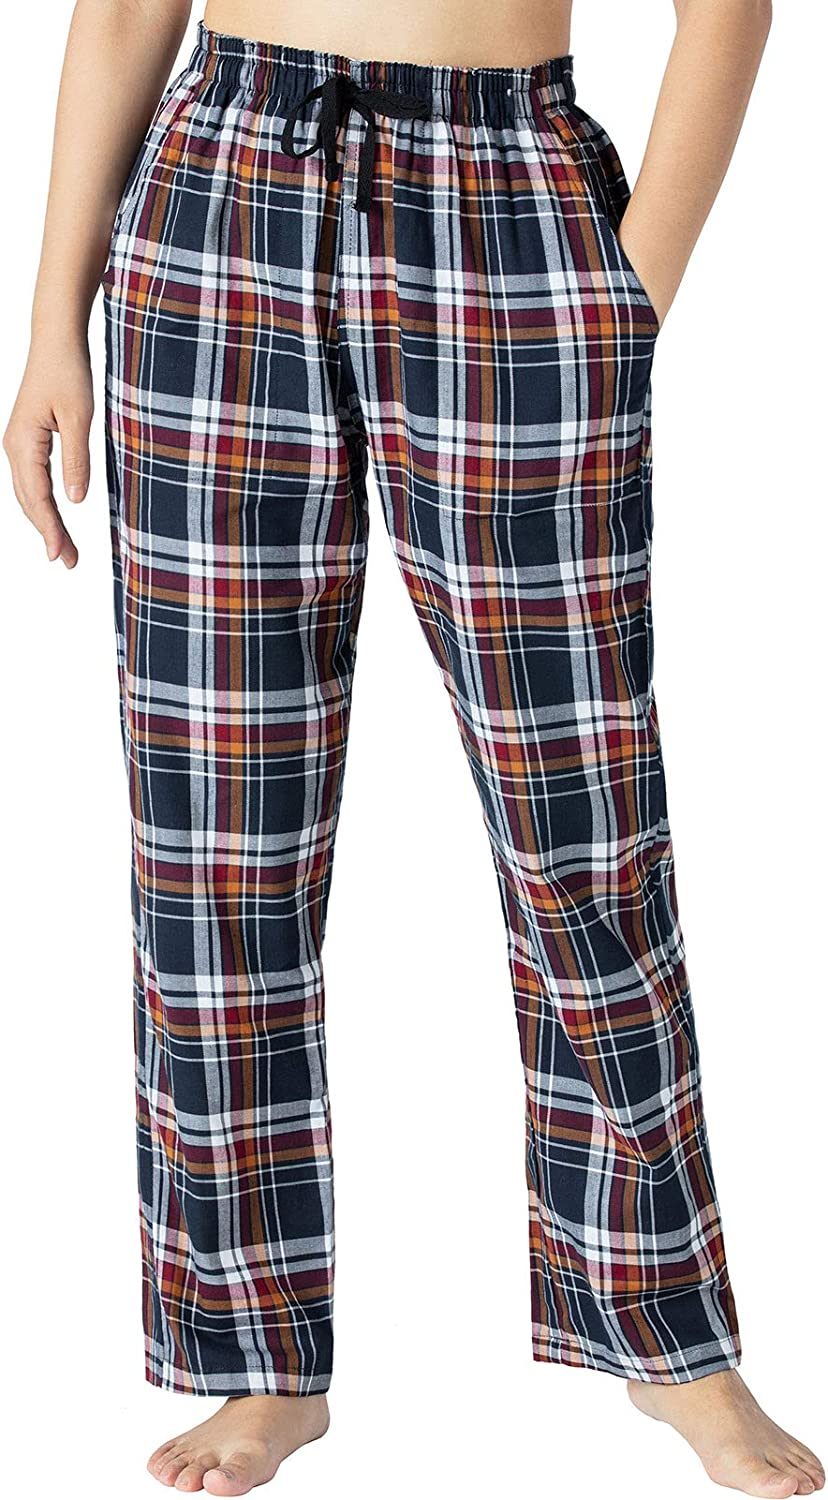 AIRIKE Women's Fleece Lounge Pajama Pants Soft Plaid Woven Sleep Pants Cotton PJ Bottoms with Pockets and Drawstring at  Women's Clothing store